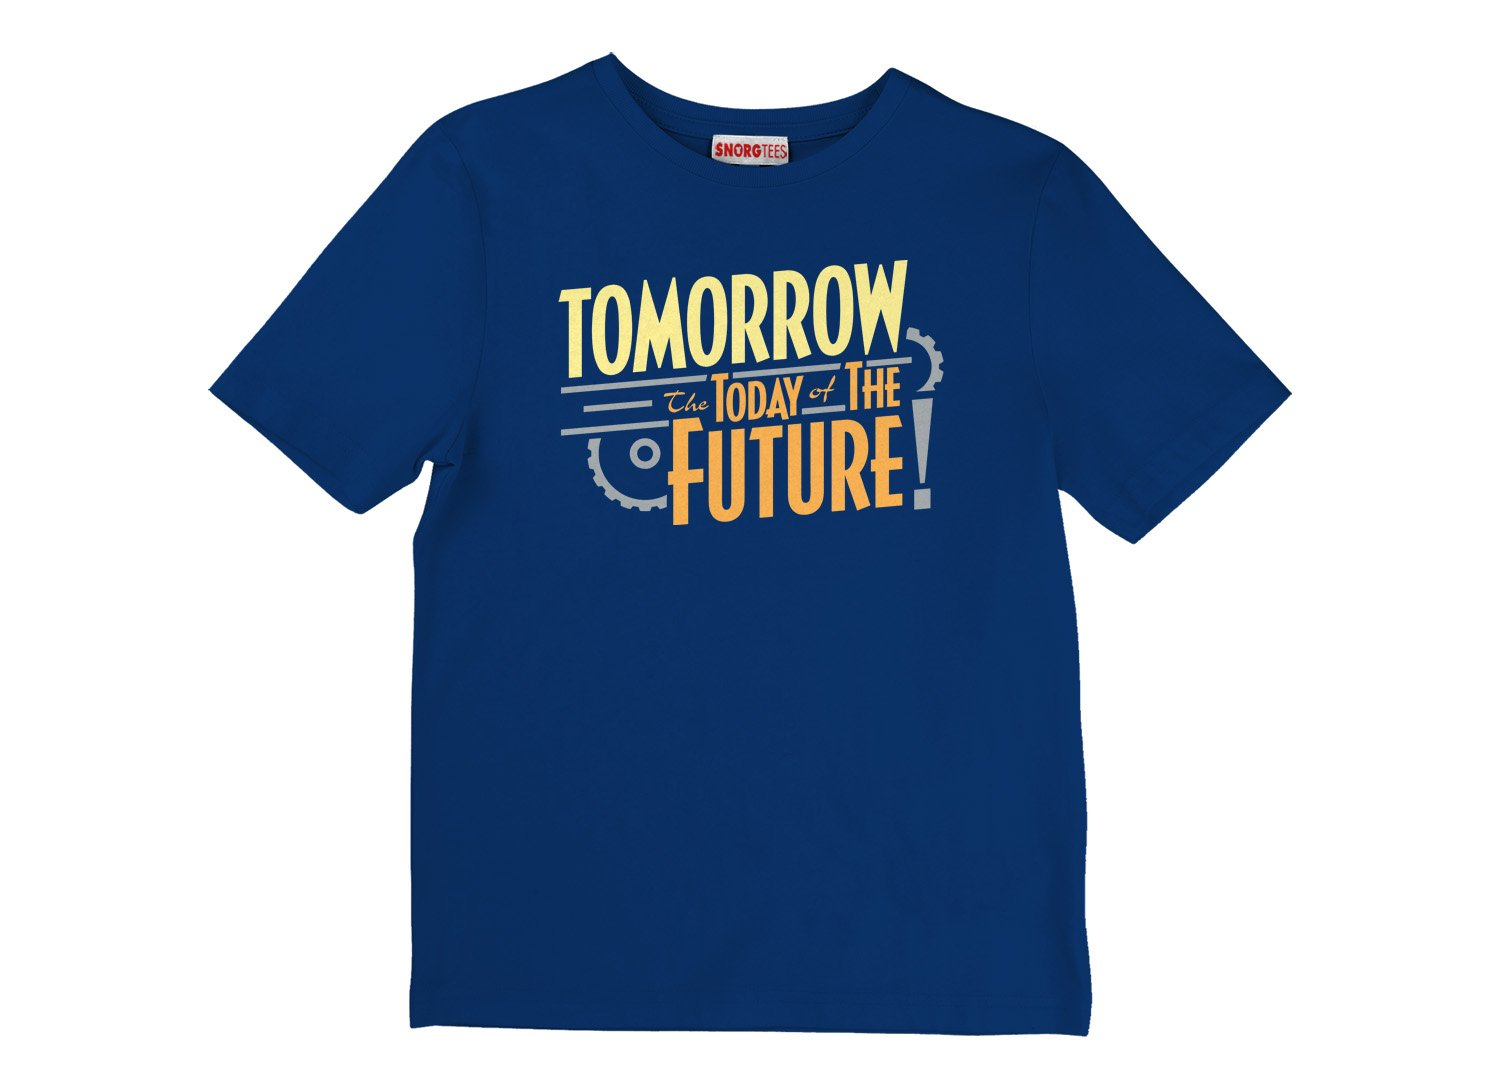 Tomorrow, The Today Of The Future on Kids T-Shirt